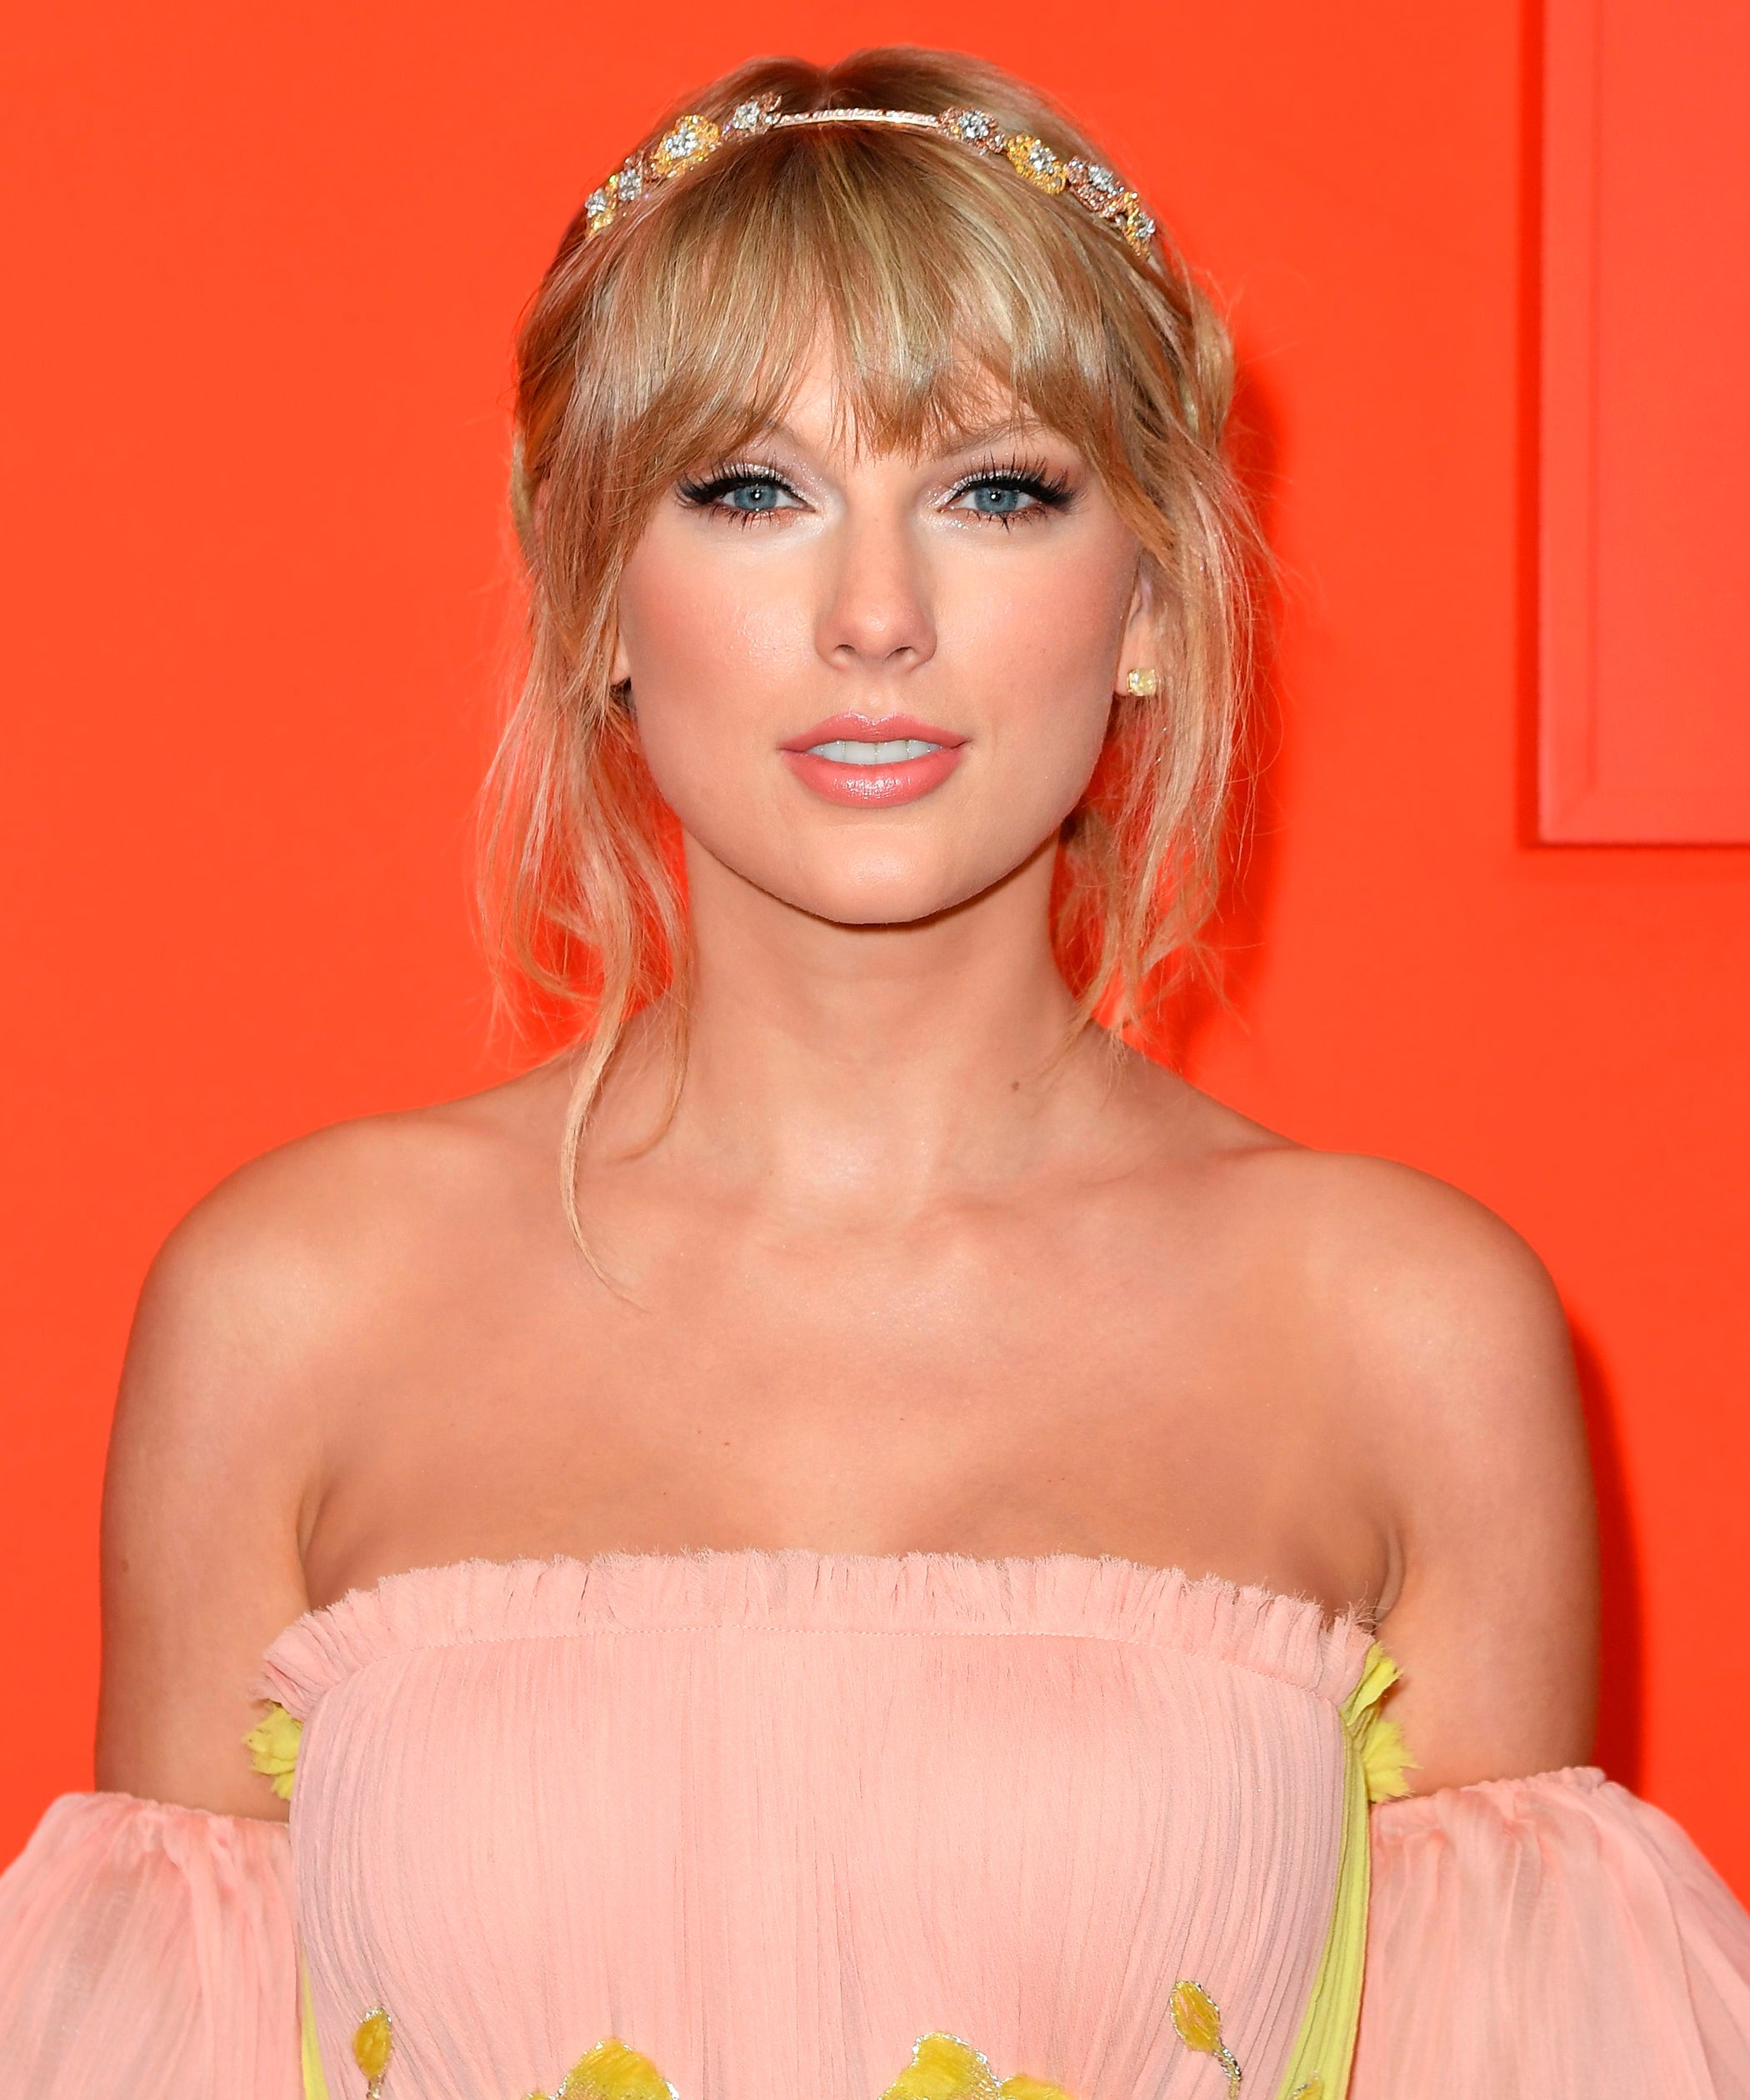 Taylor Swift Wears Braided Buns In New Folklore Album